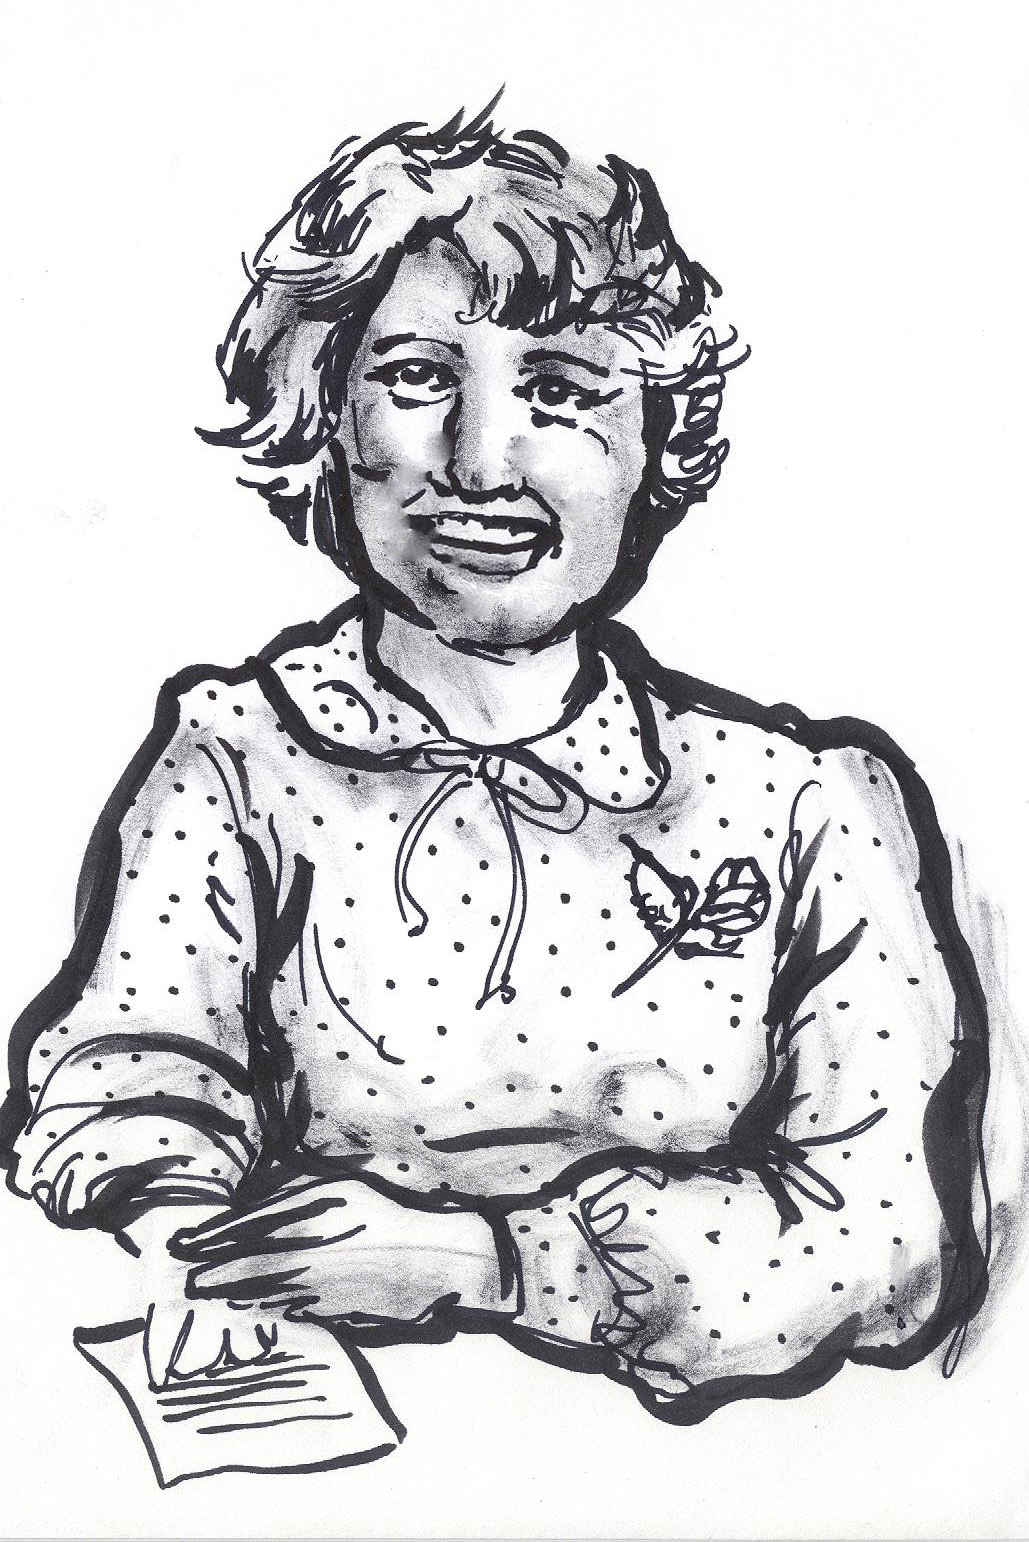 ink sketch of smiling woman with pen and paper